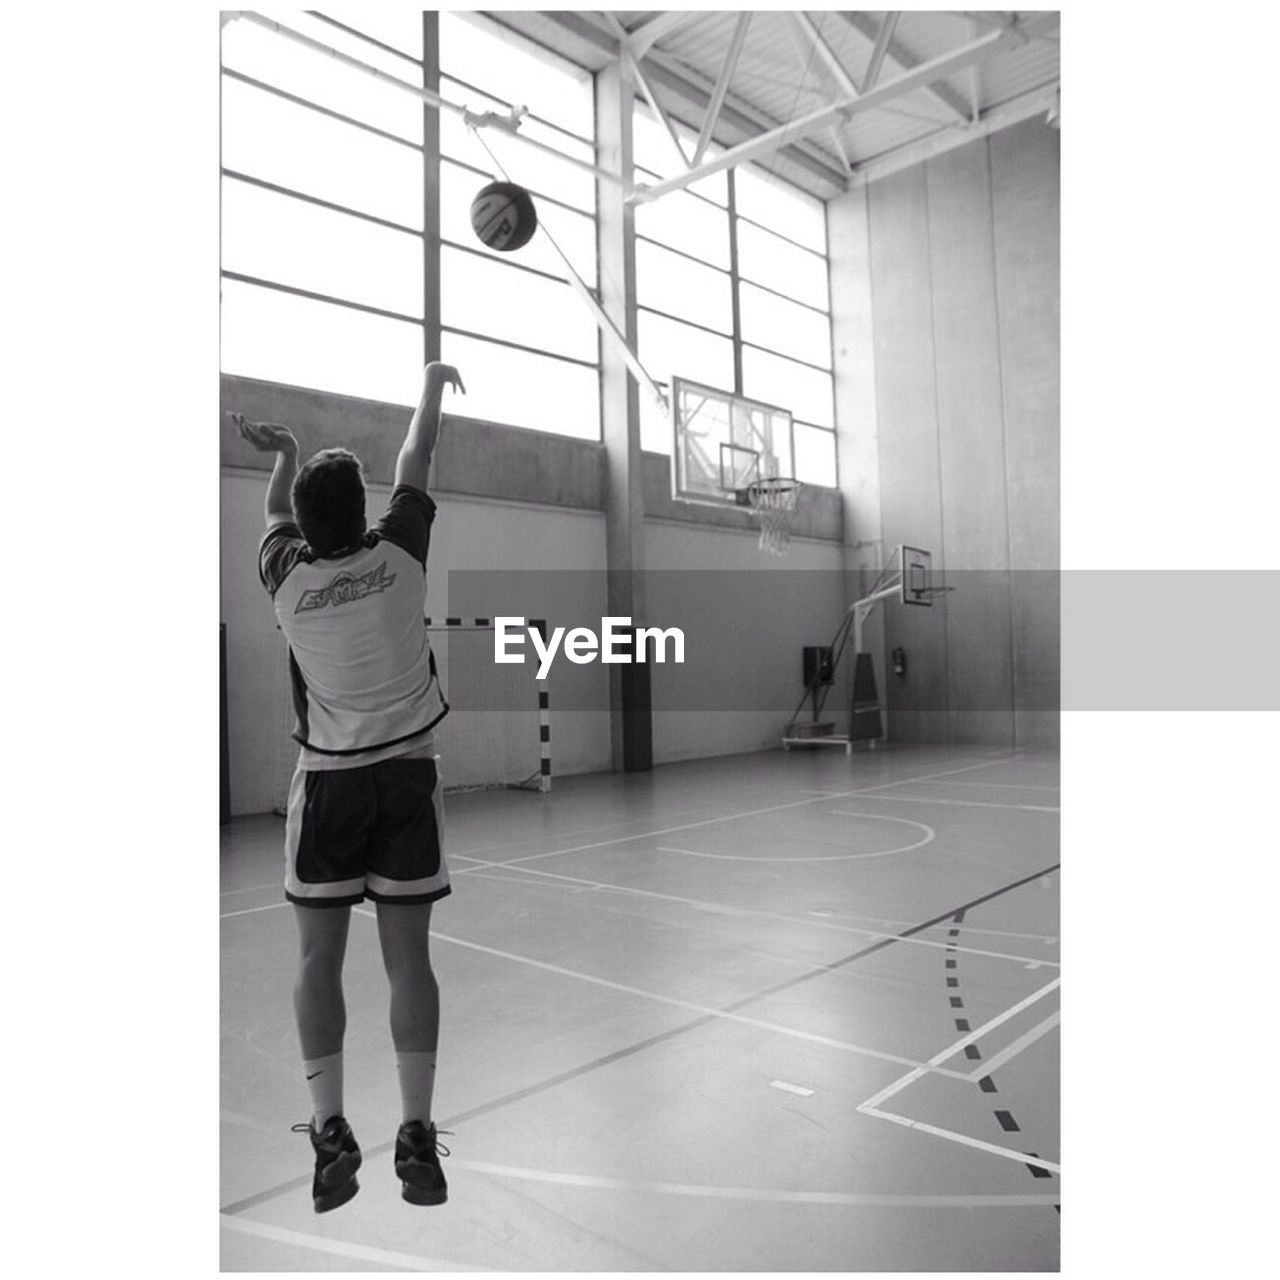 indoors, real people, rear view, full length, one person, gym, lifestyles, exercising, basketball hoop, sport, architecture, day, sports clothing, court, basketball - sport, people